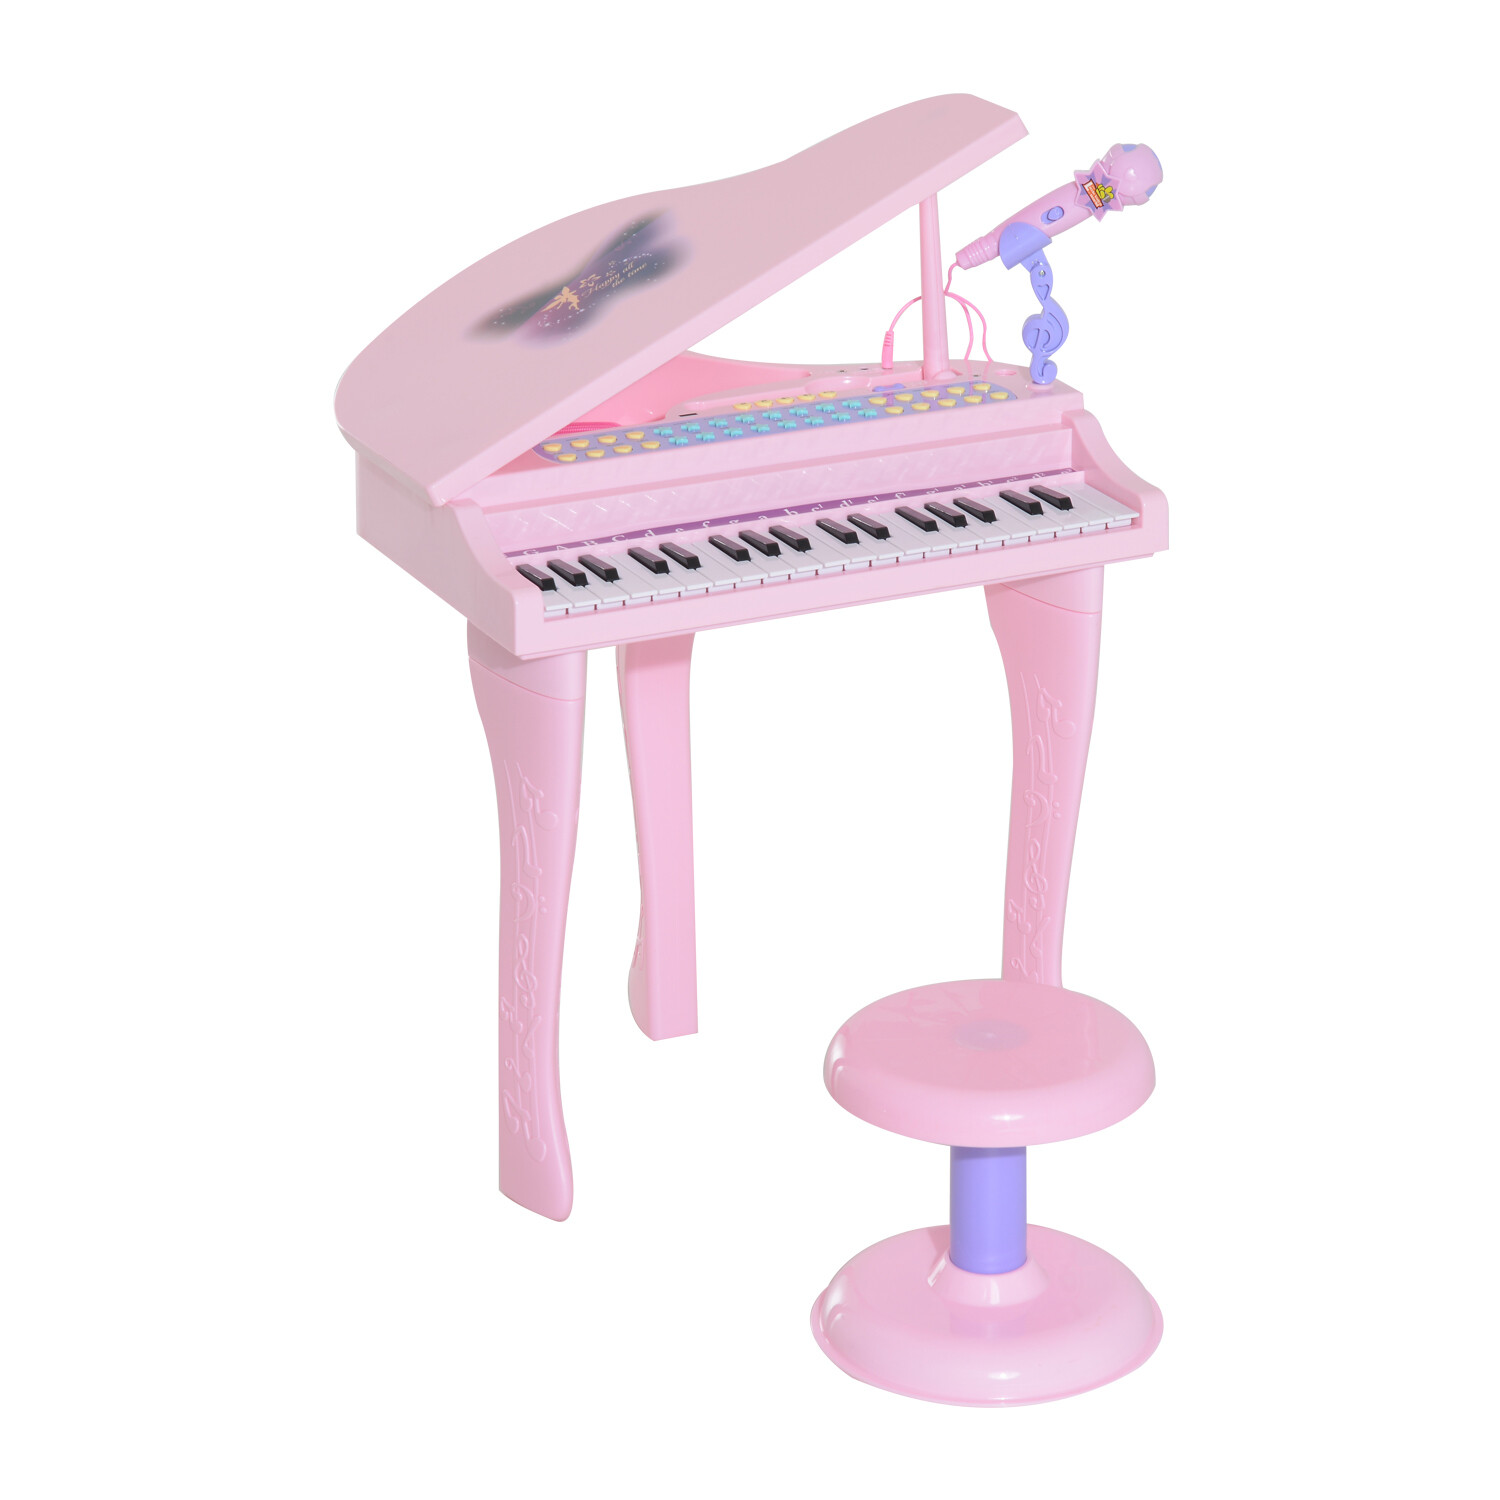 HOMCOM® Kinder Klavier Keyboard Musikinstrument MP3 USB 37 Tasten mit Hocker Rosa